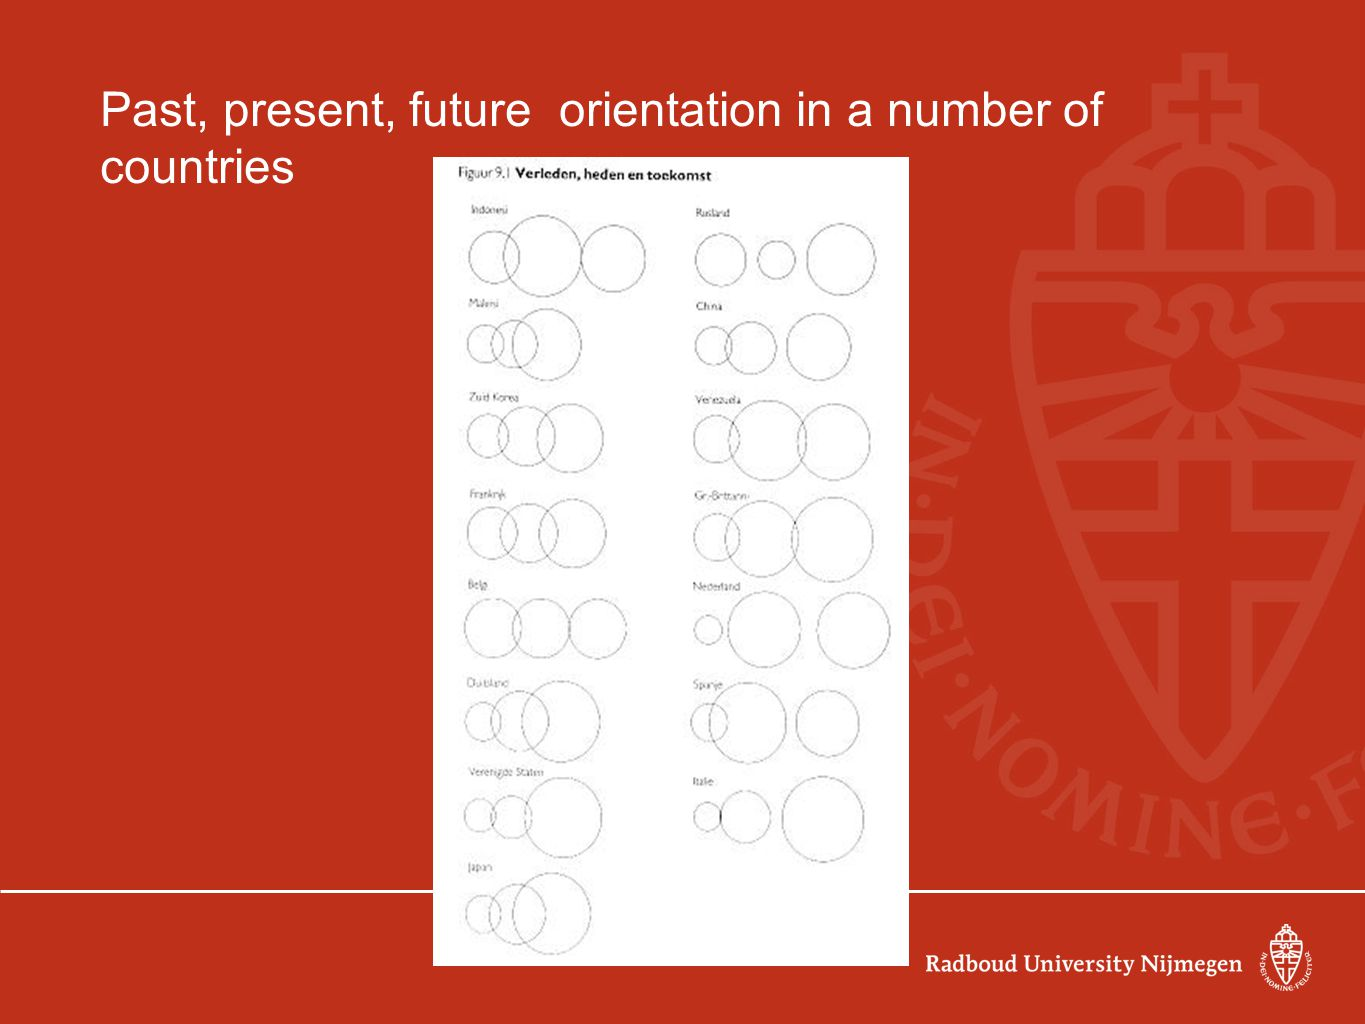 Past, present, future orientation in a number of countries